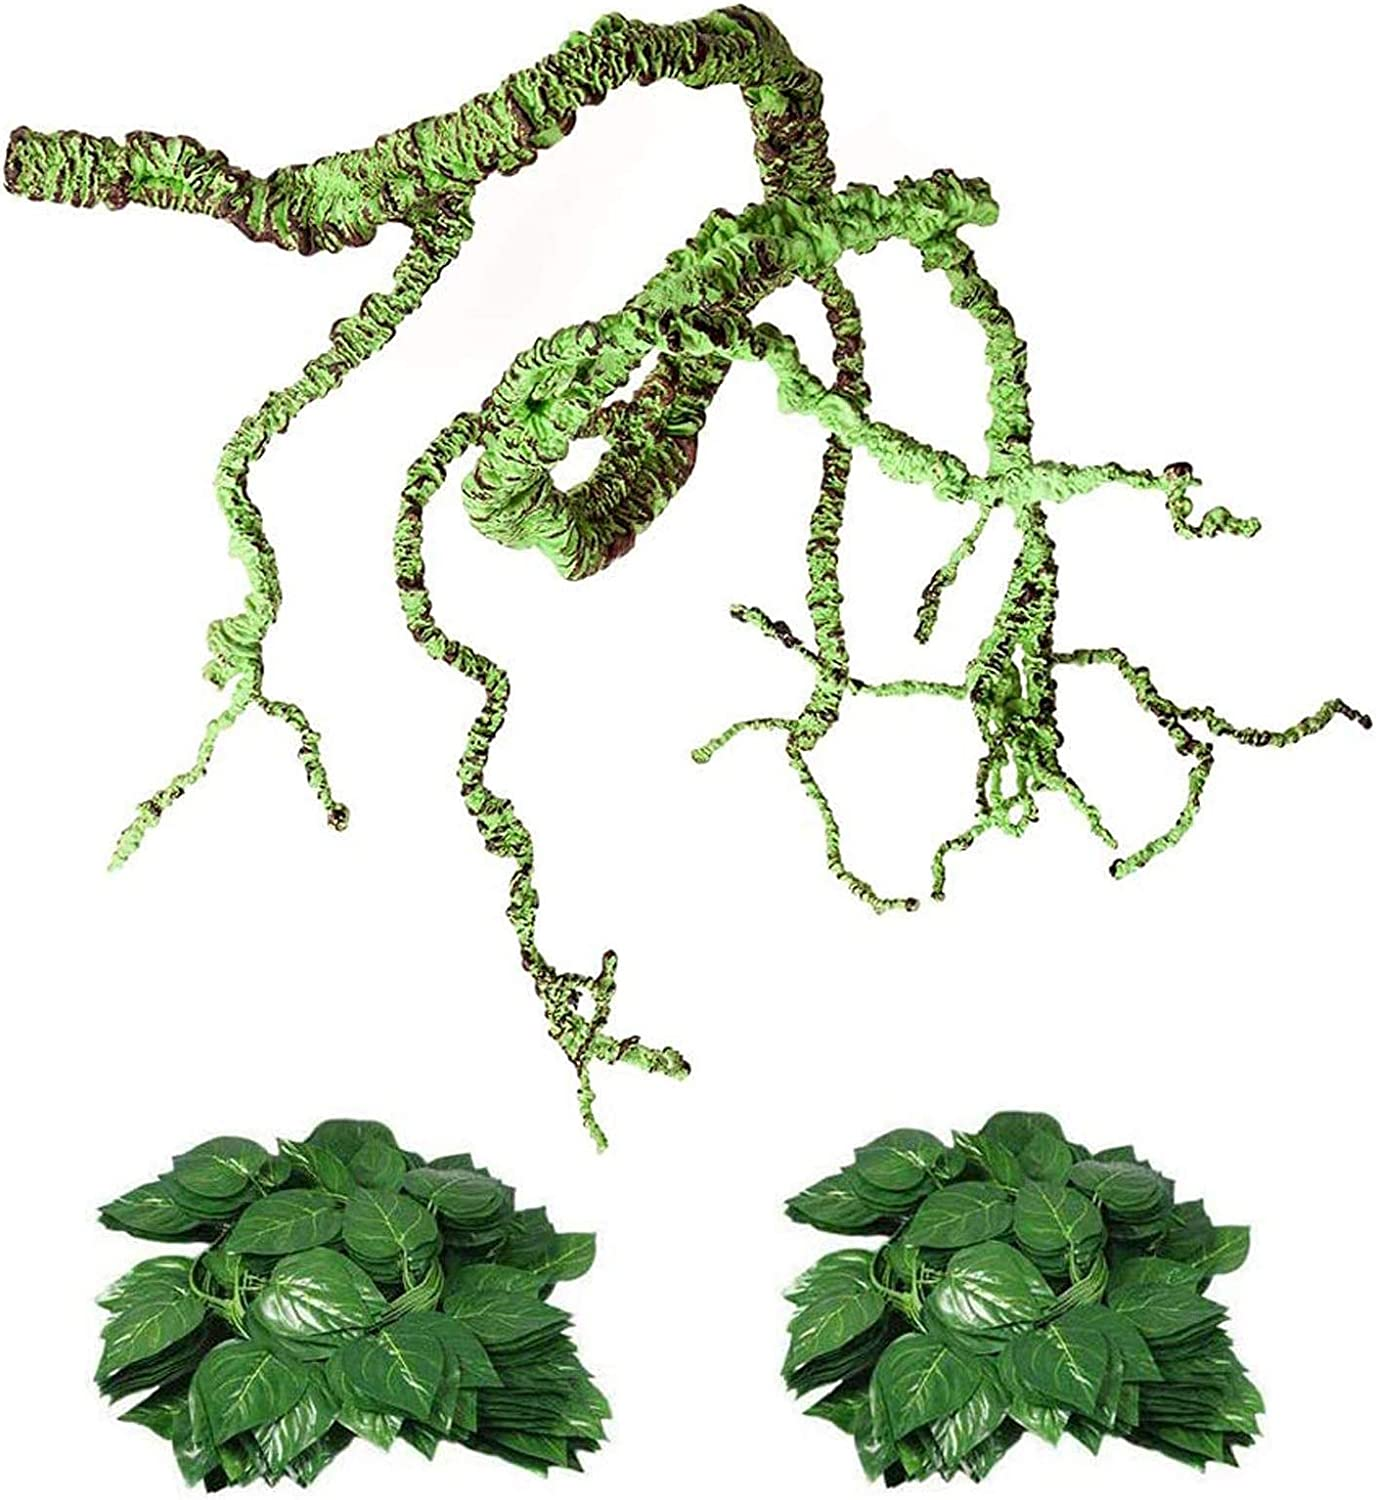 Flexible Bend-A-Branch Jungle Vines Plastic Terrarium Plant Leaves Pet Habitat Decor for Lizard,Frogs, Snakes and More Reptiles(Pack of 3) (Reptile Vines)